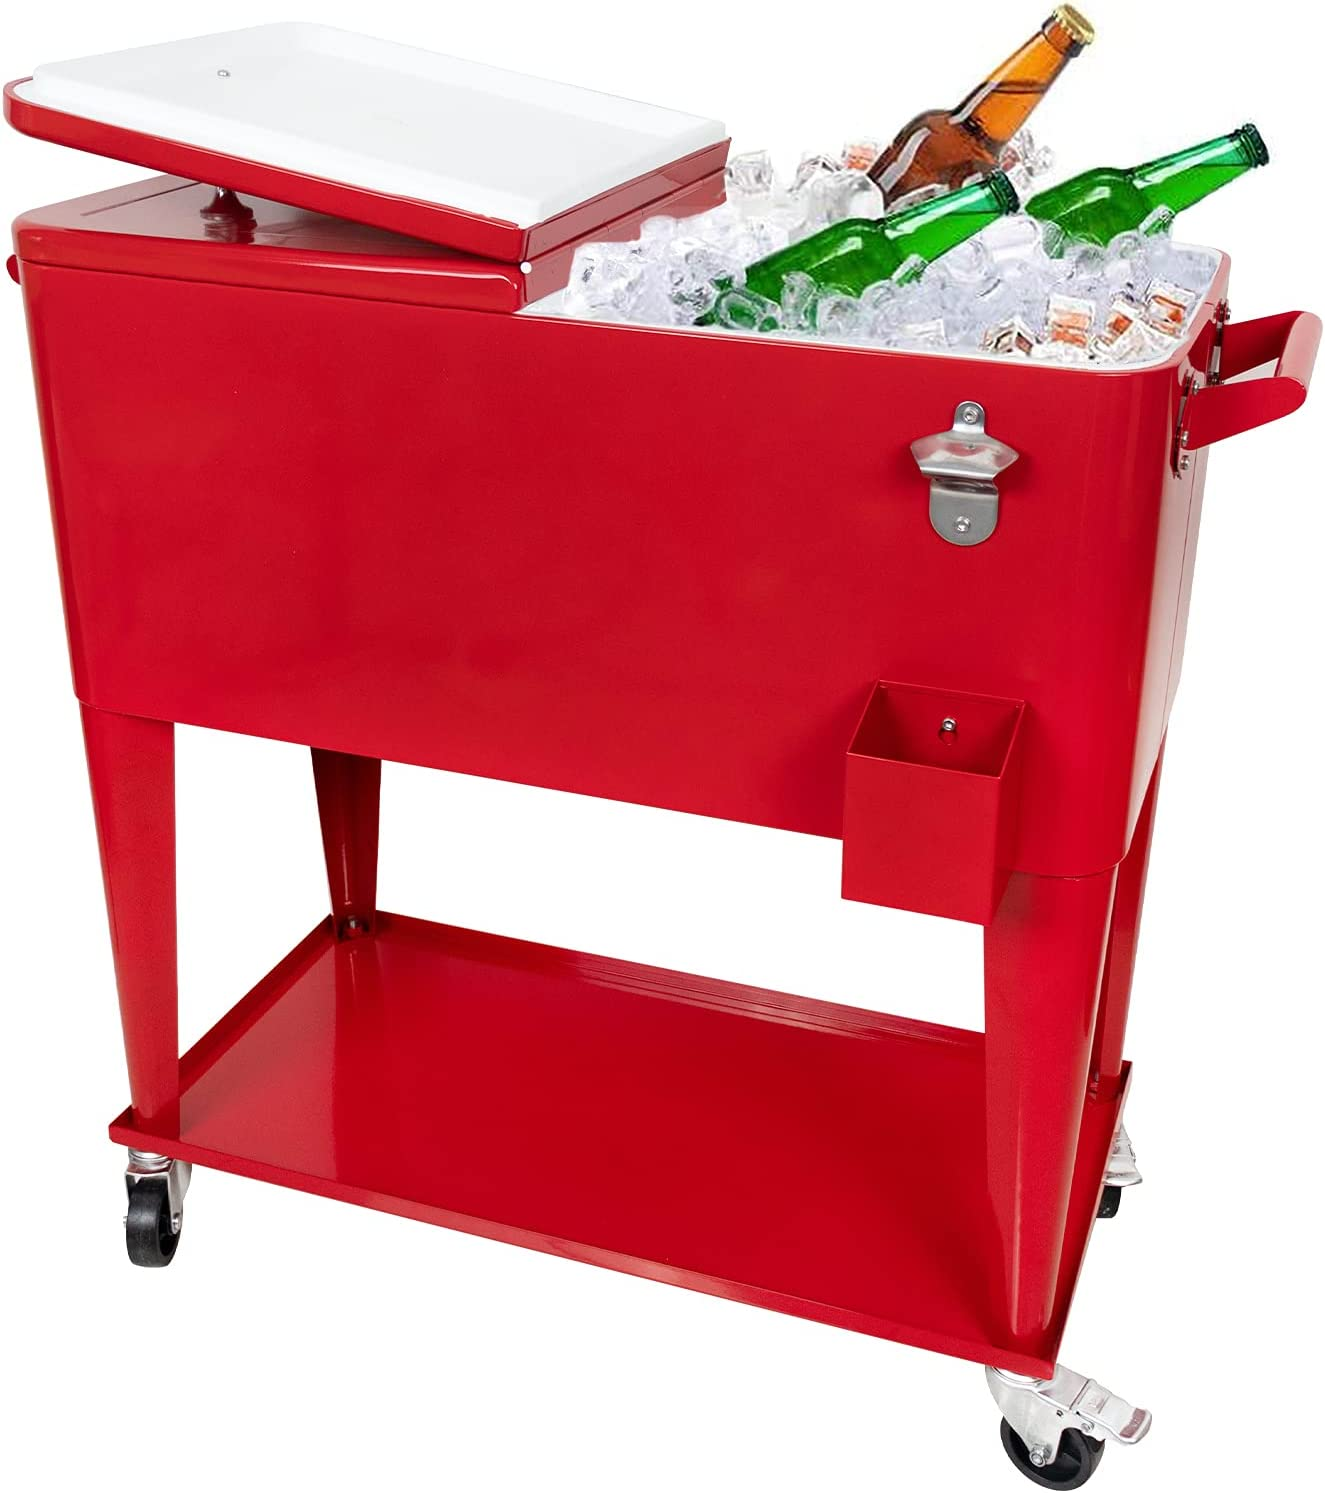 Nattork 80 Quart Rolling Cooler Cart for Outdoor Patio Deck Party, Portable Party Bar Cold Drink Beverage Cart,Ice Chest with Shelf, Water Pipe and Bottle Opener